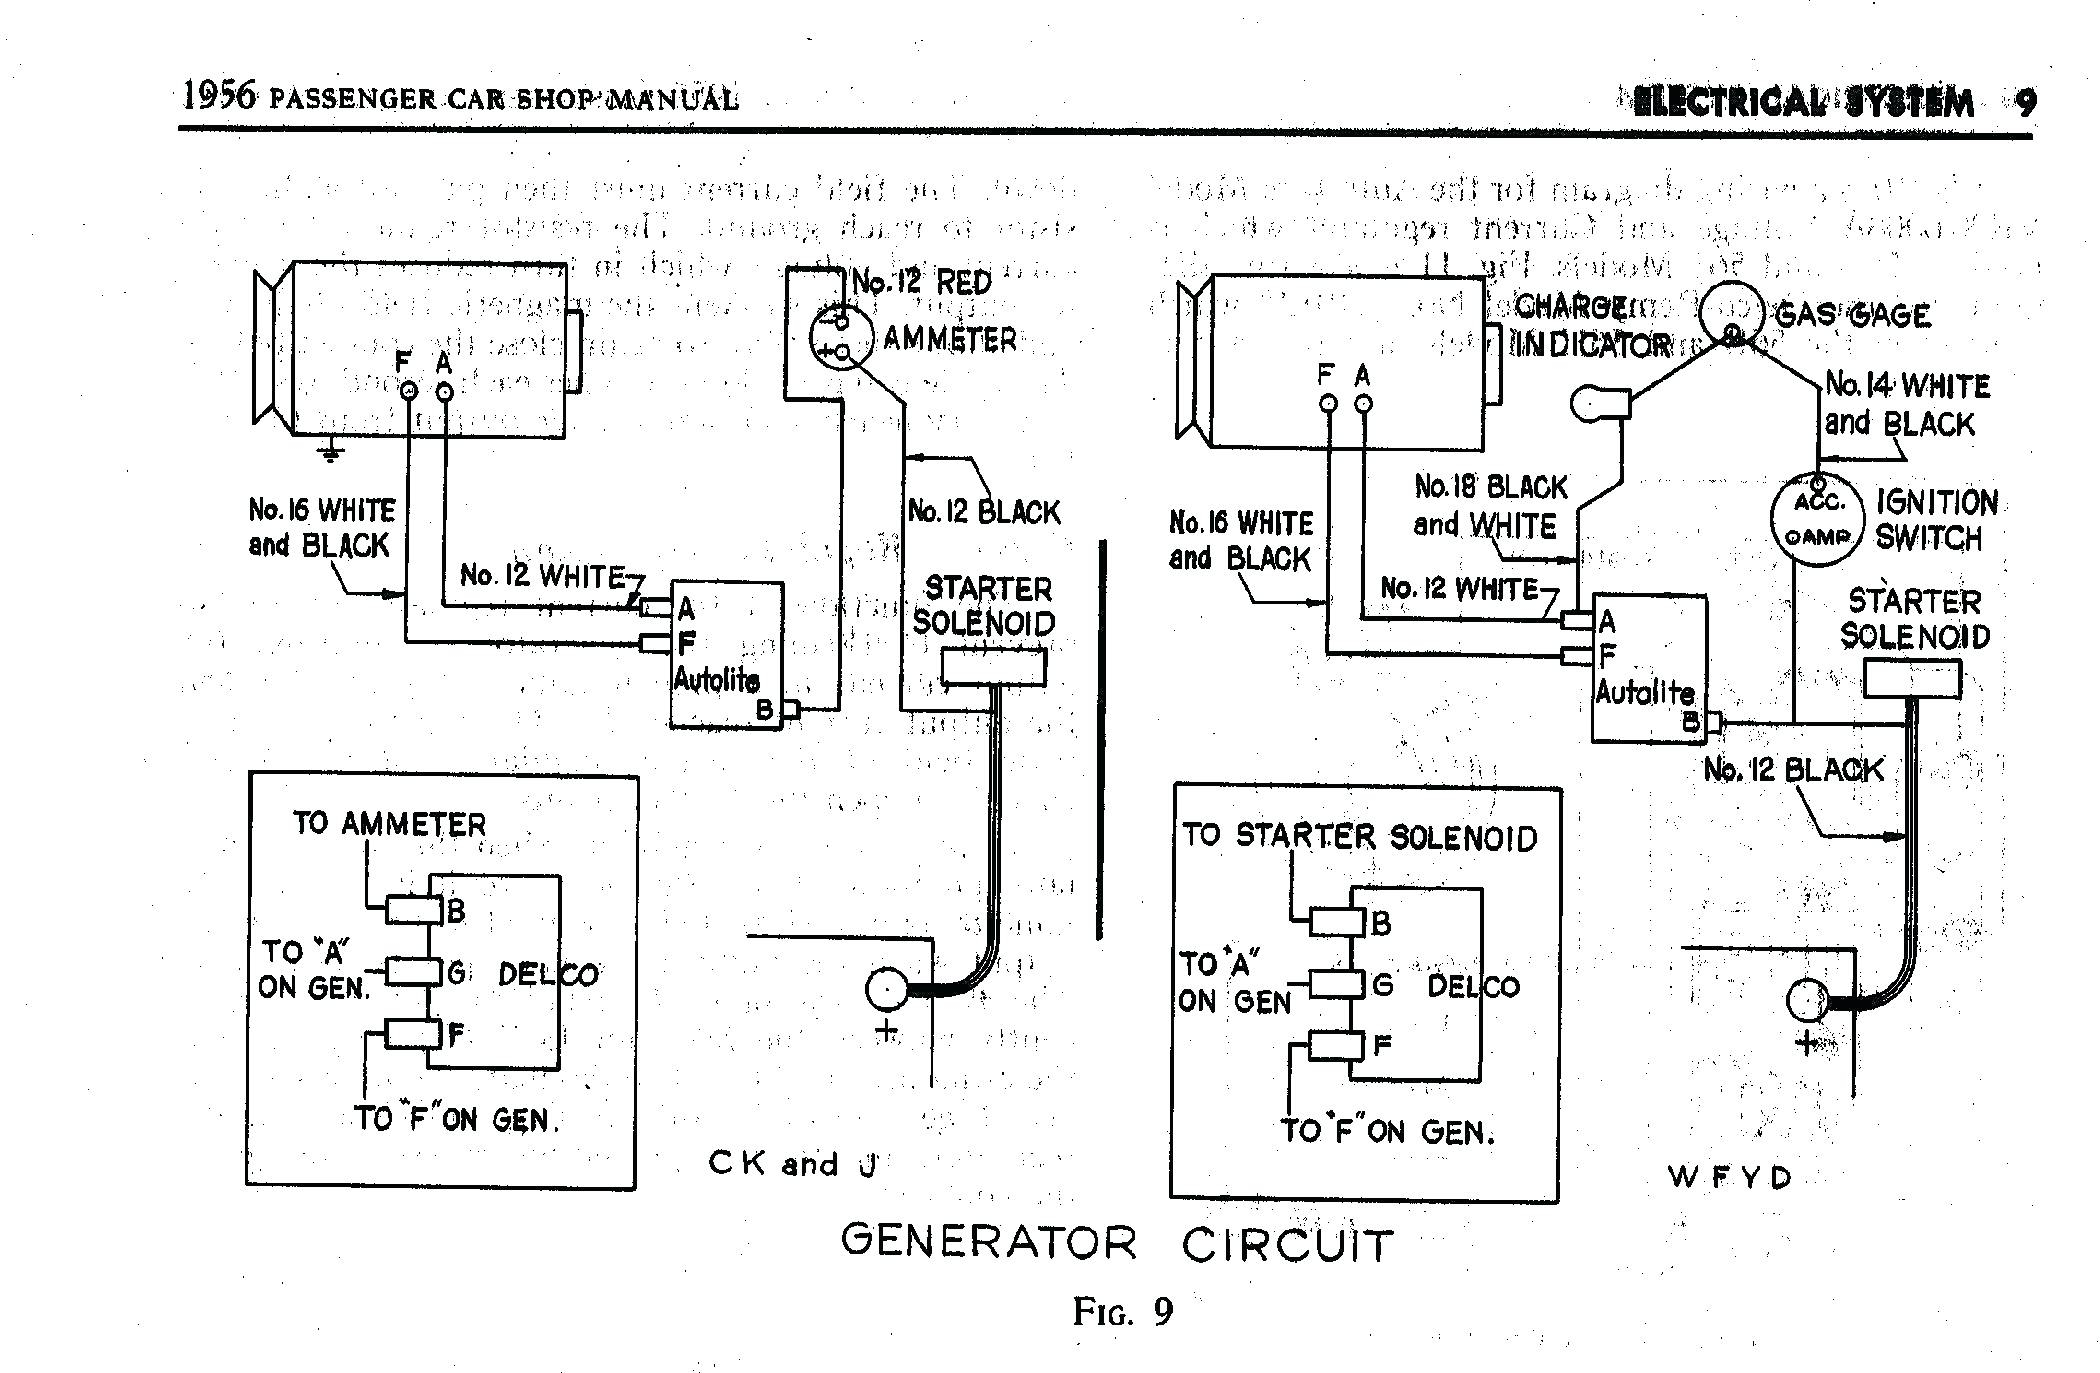 asco 7000 wiring diagram 220v dryer plug series 300 collection